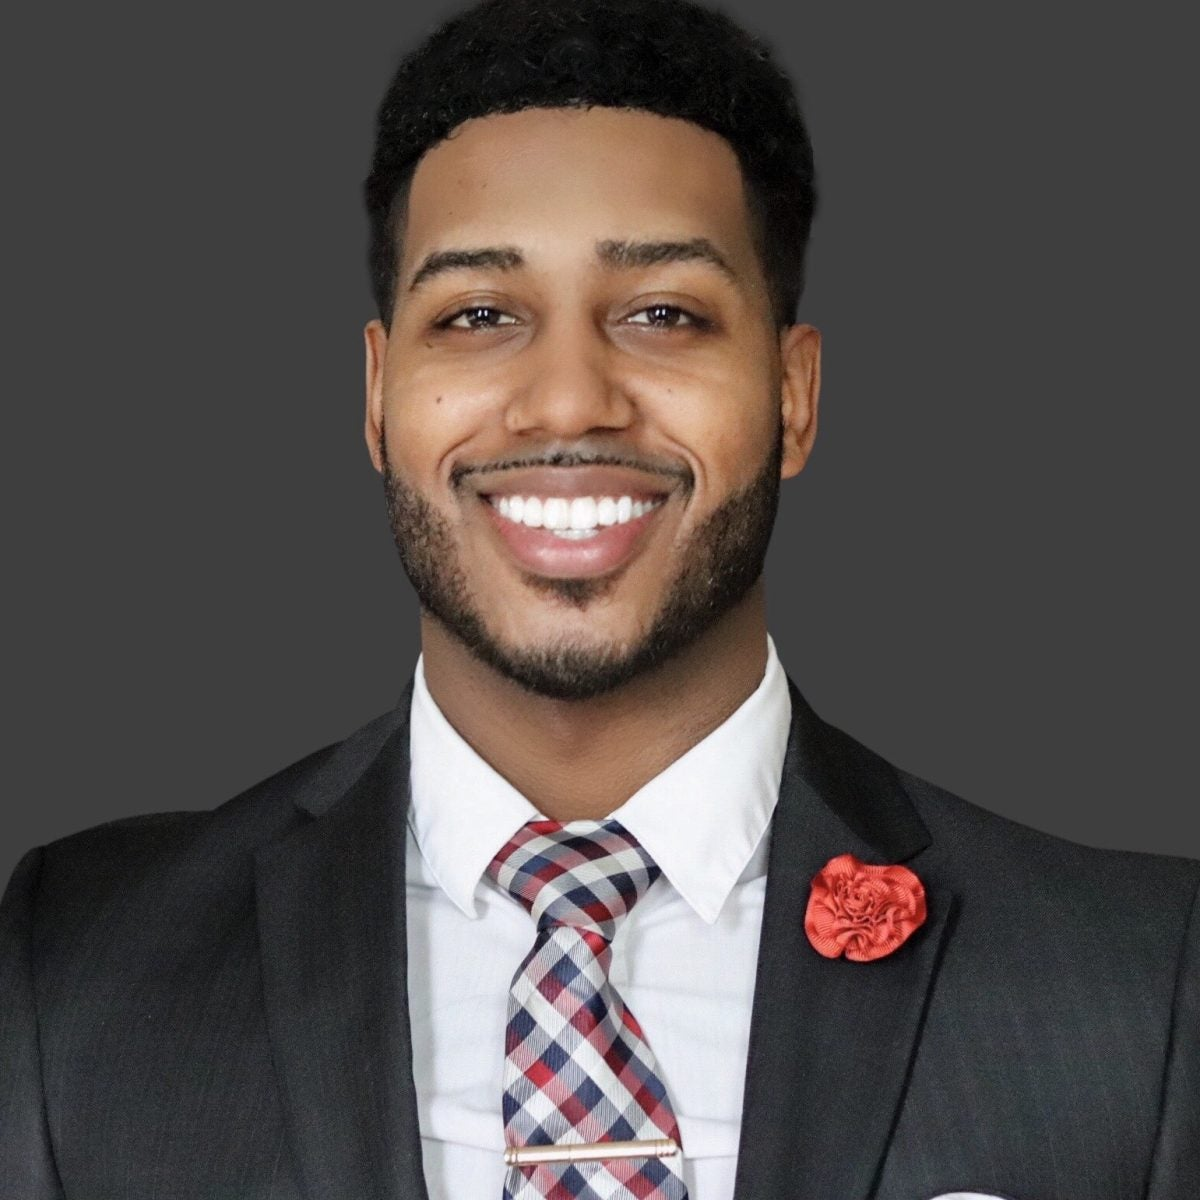 This HBCU Alum Turned a College Fair Into An Organization That Generated $52M in Scholarships-Here's How